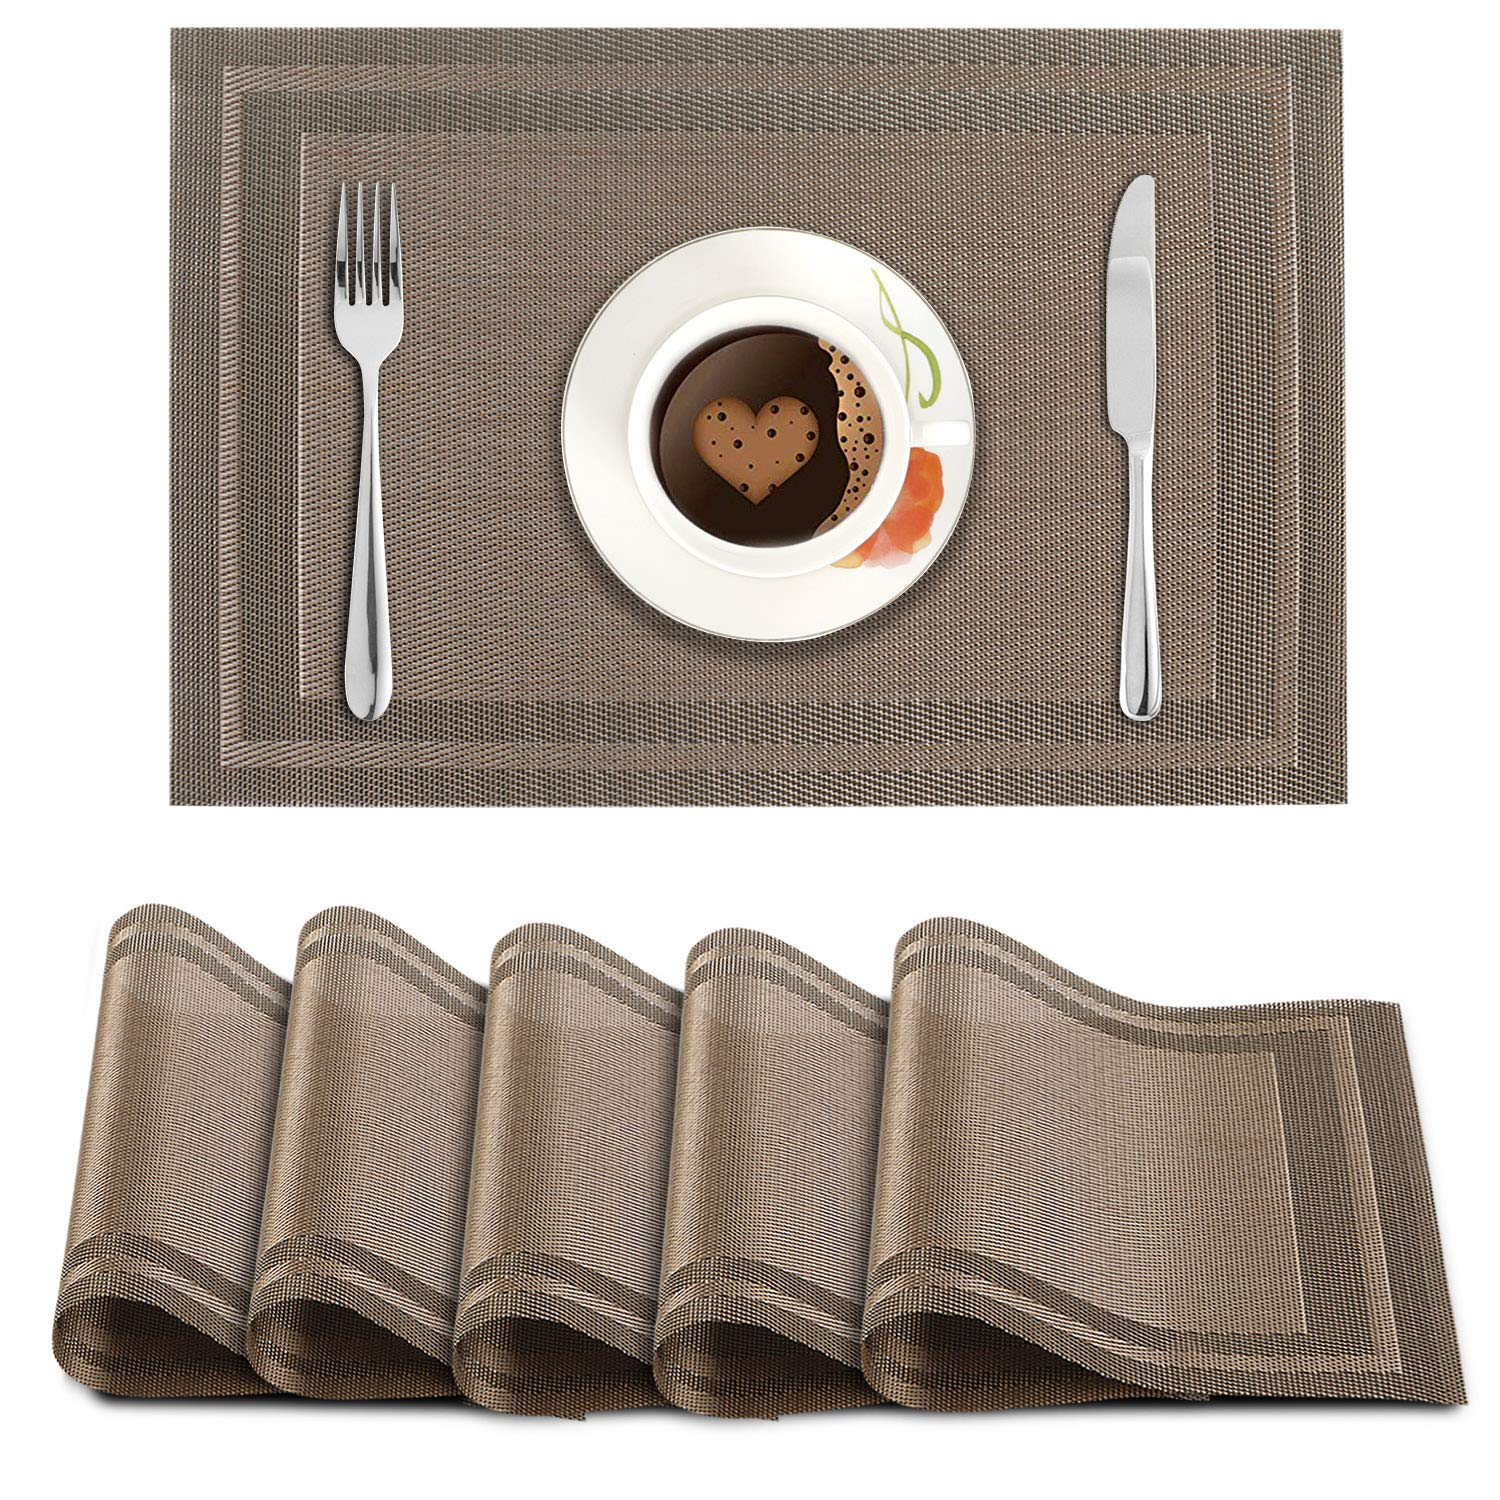 HOKIPO PVC 6 Pieces Dining Table Kitchen Placemats (45 X 30 cm, Brown)